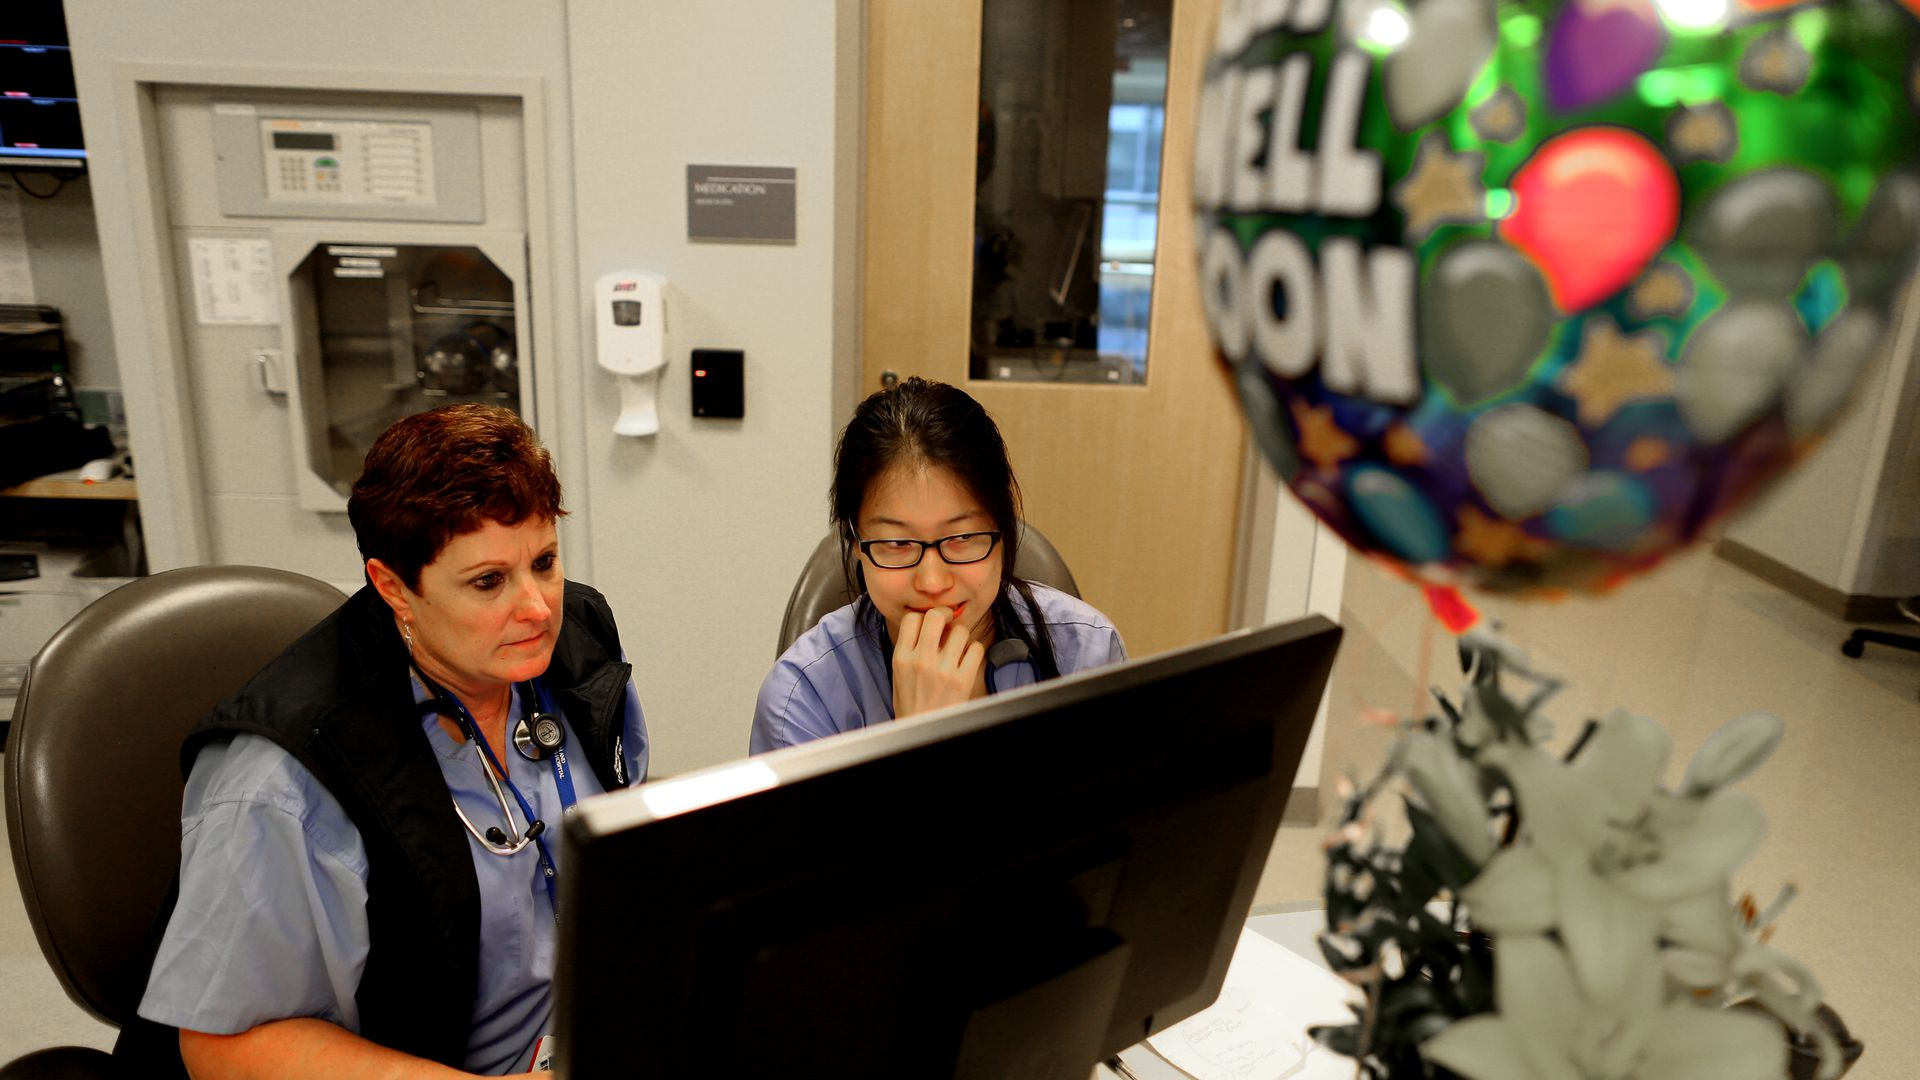 Two nurses look at a computer at a hospital.